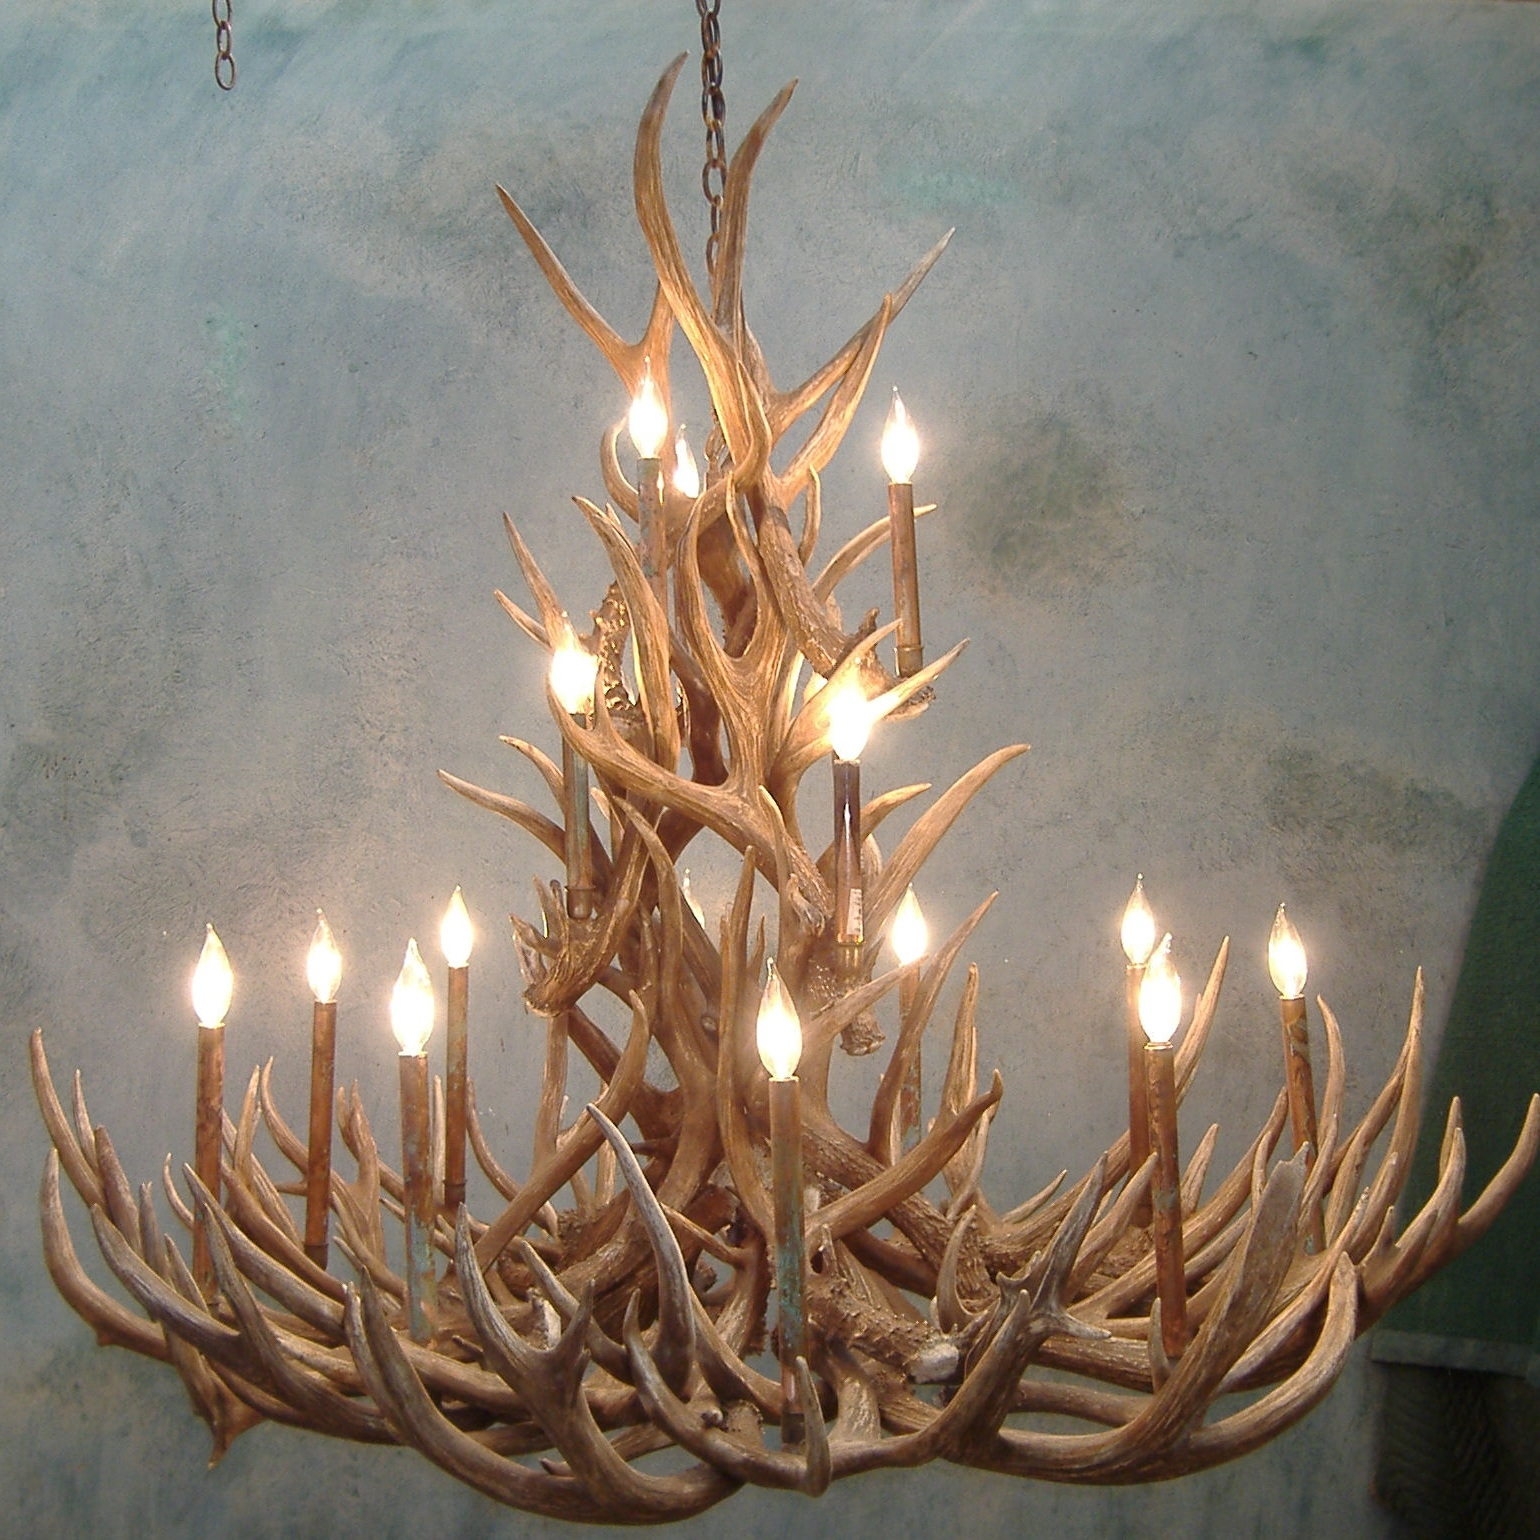 12 inspirations of stag horn chandelier small antler chandelier lightupmyparty with regard to stag horn chandelier 8 of 12 aloadofball Choice Image